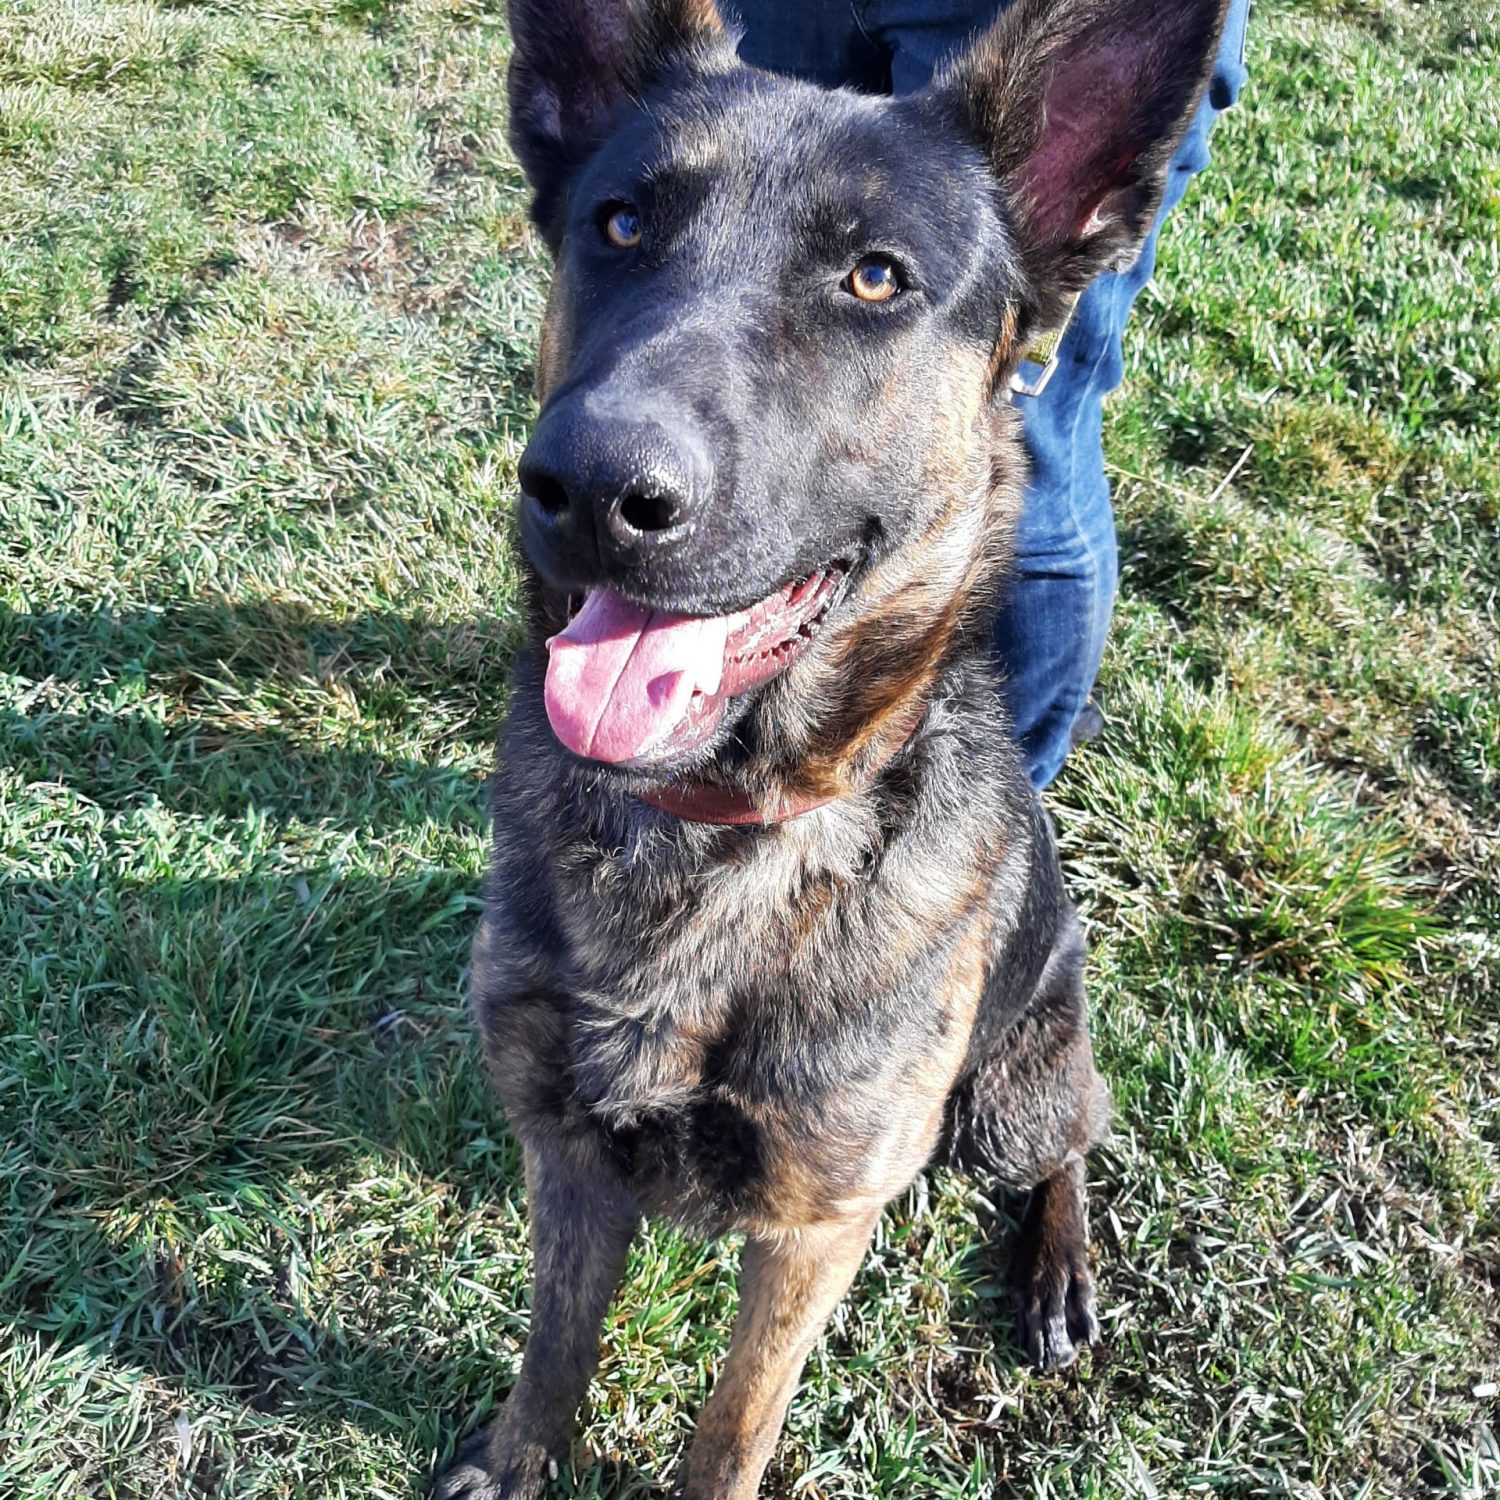 Luke is a one-year-old German Shepard and Mallinois mix. He is kind and loving with all the people he meets, though still has quite a bit of his puppy energy. We are still getting a feel for how he does with other dogs and cats.